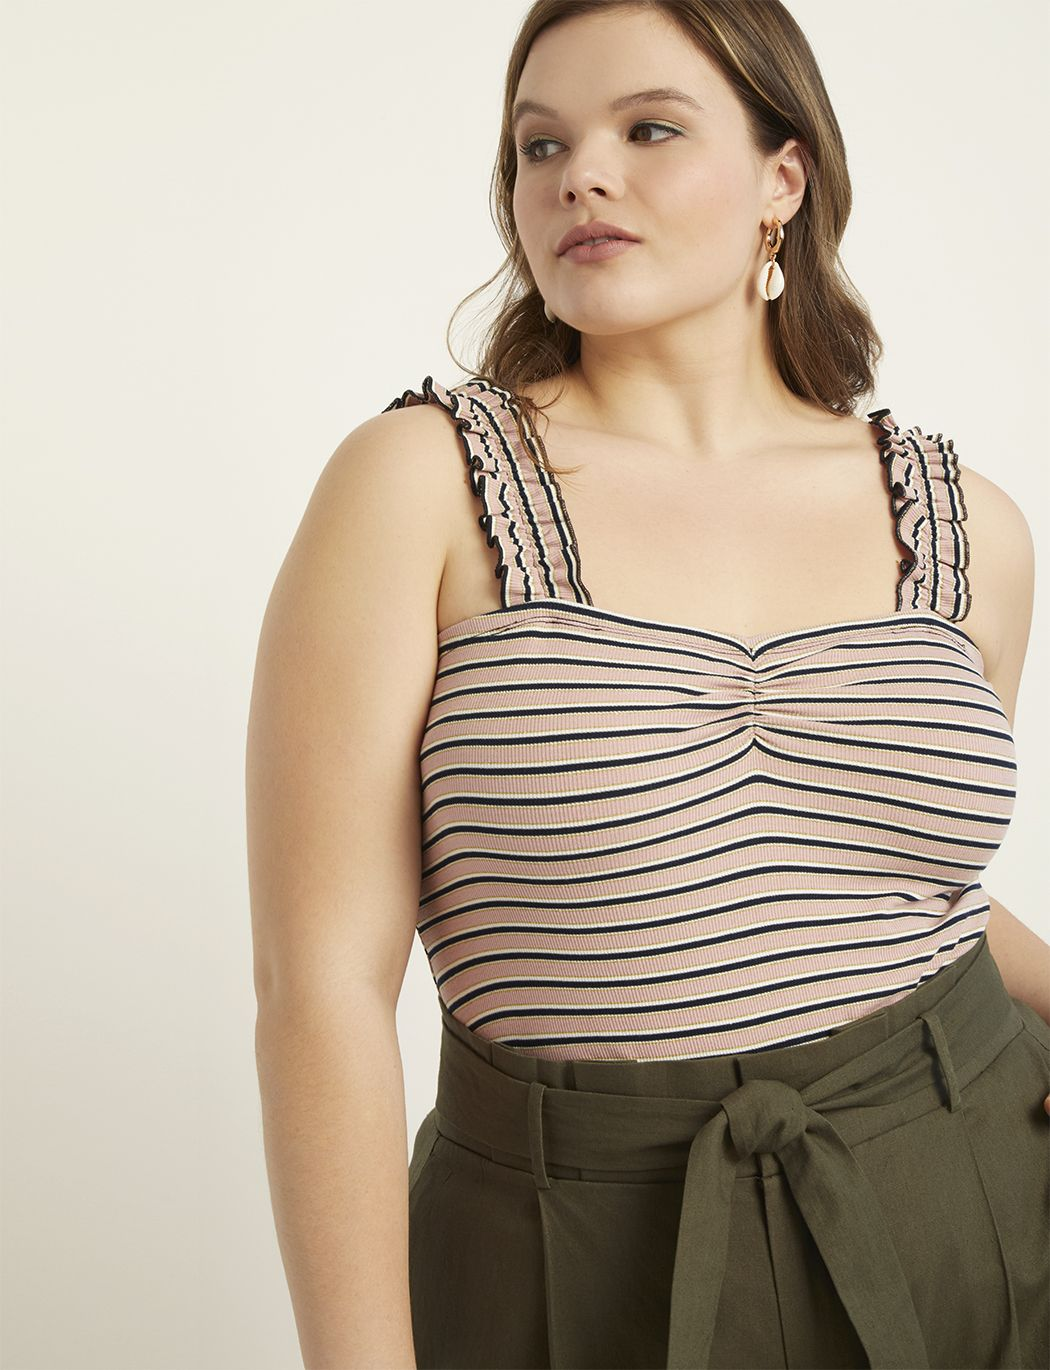 caf43b3859b0a Ruffle Strap Tank in 2019 | My Style | Tops, Plus size tops, Plus ...